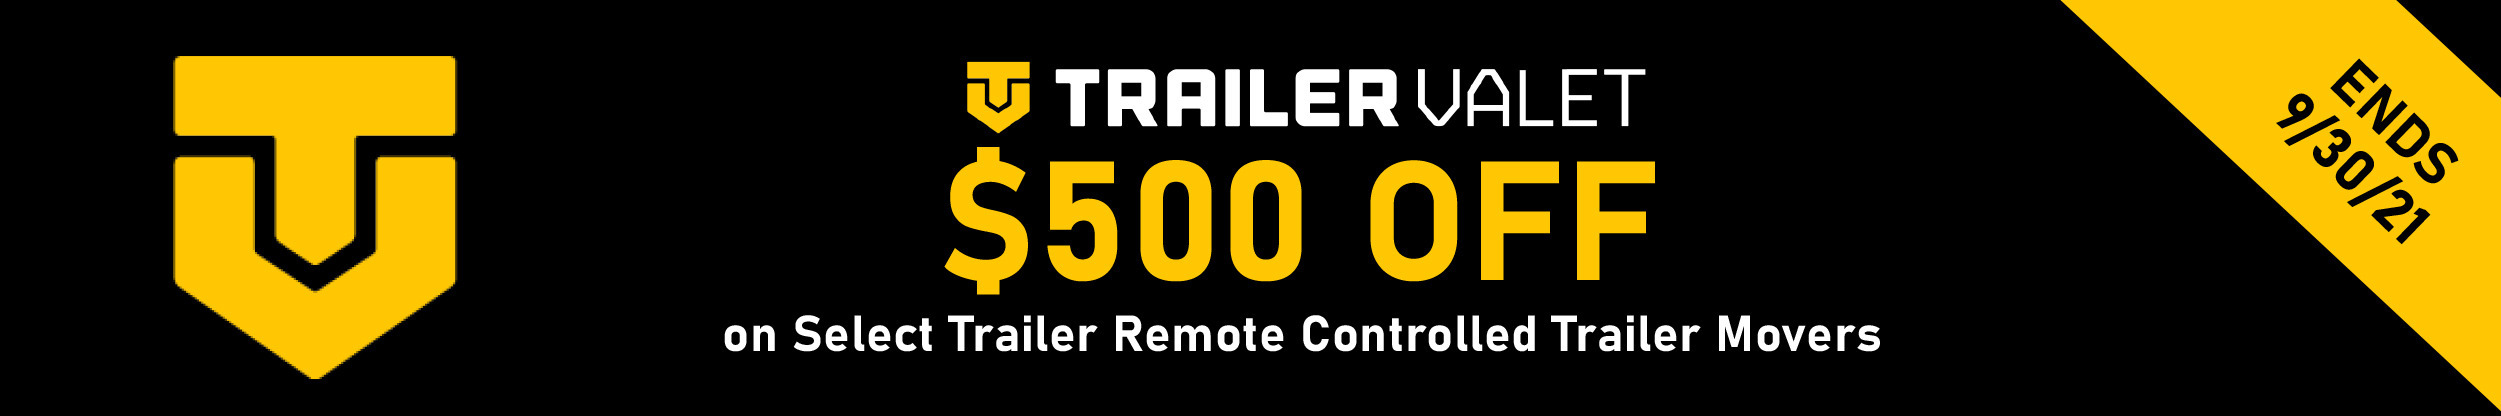 Trailer Valet - $500 off select Remote Controlled Trailer Movers - 9/3 thru 9/30